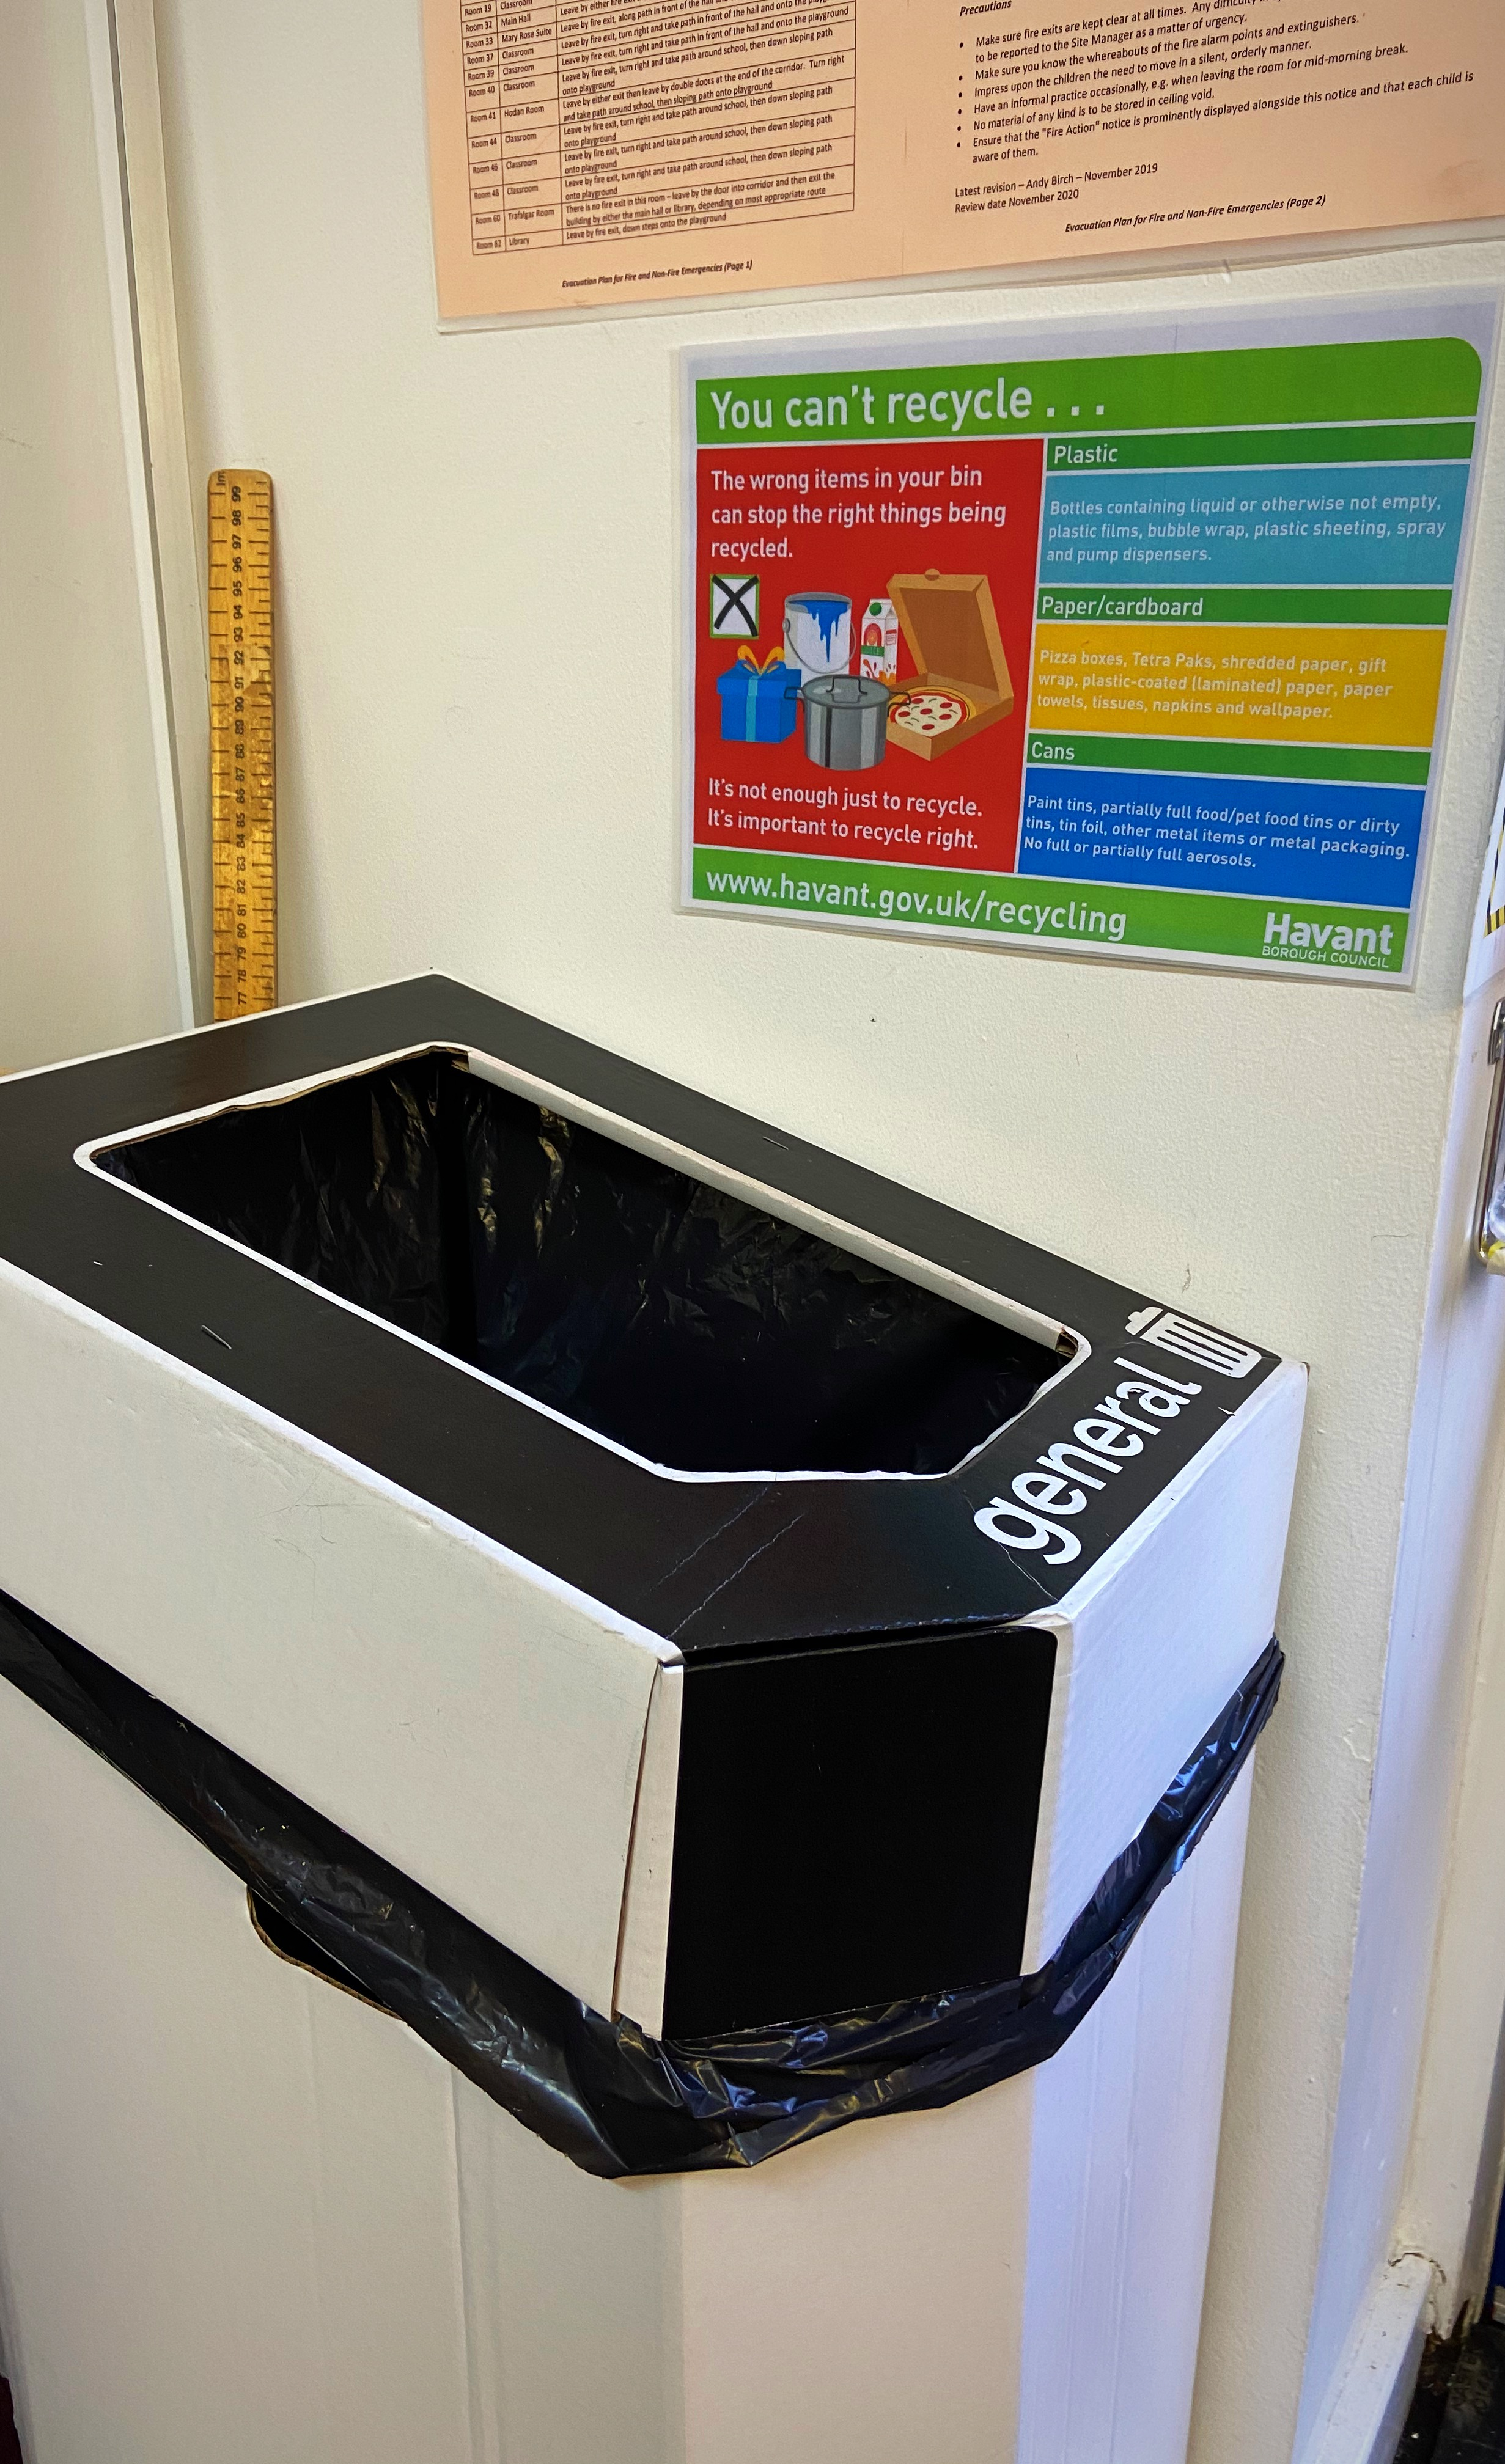 New General Waste and Mixed Recycling bins have been introduced to all classes, shared areas, learning spaces and community areas. We are now more mindful of how we throw away our waste and what can/cannot be recycled.